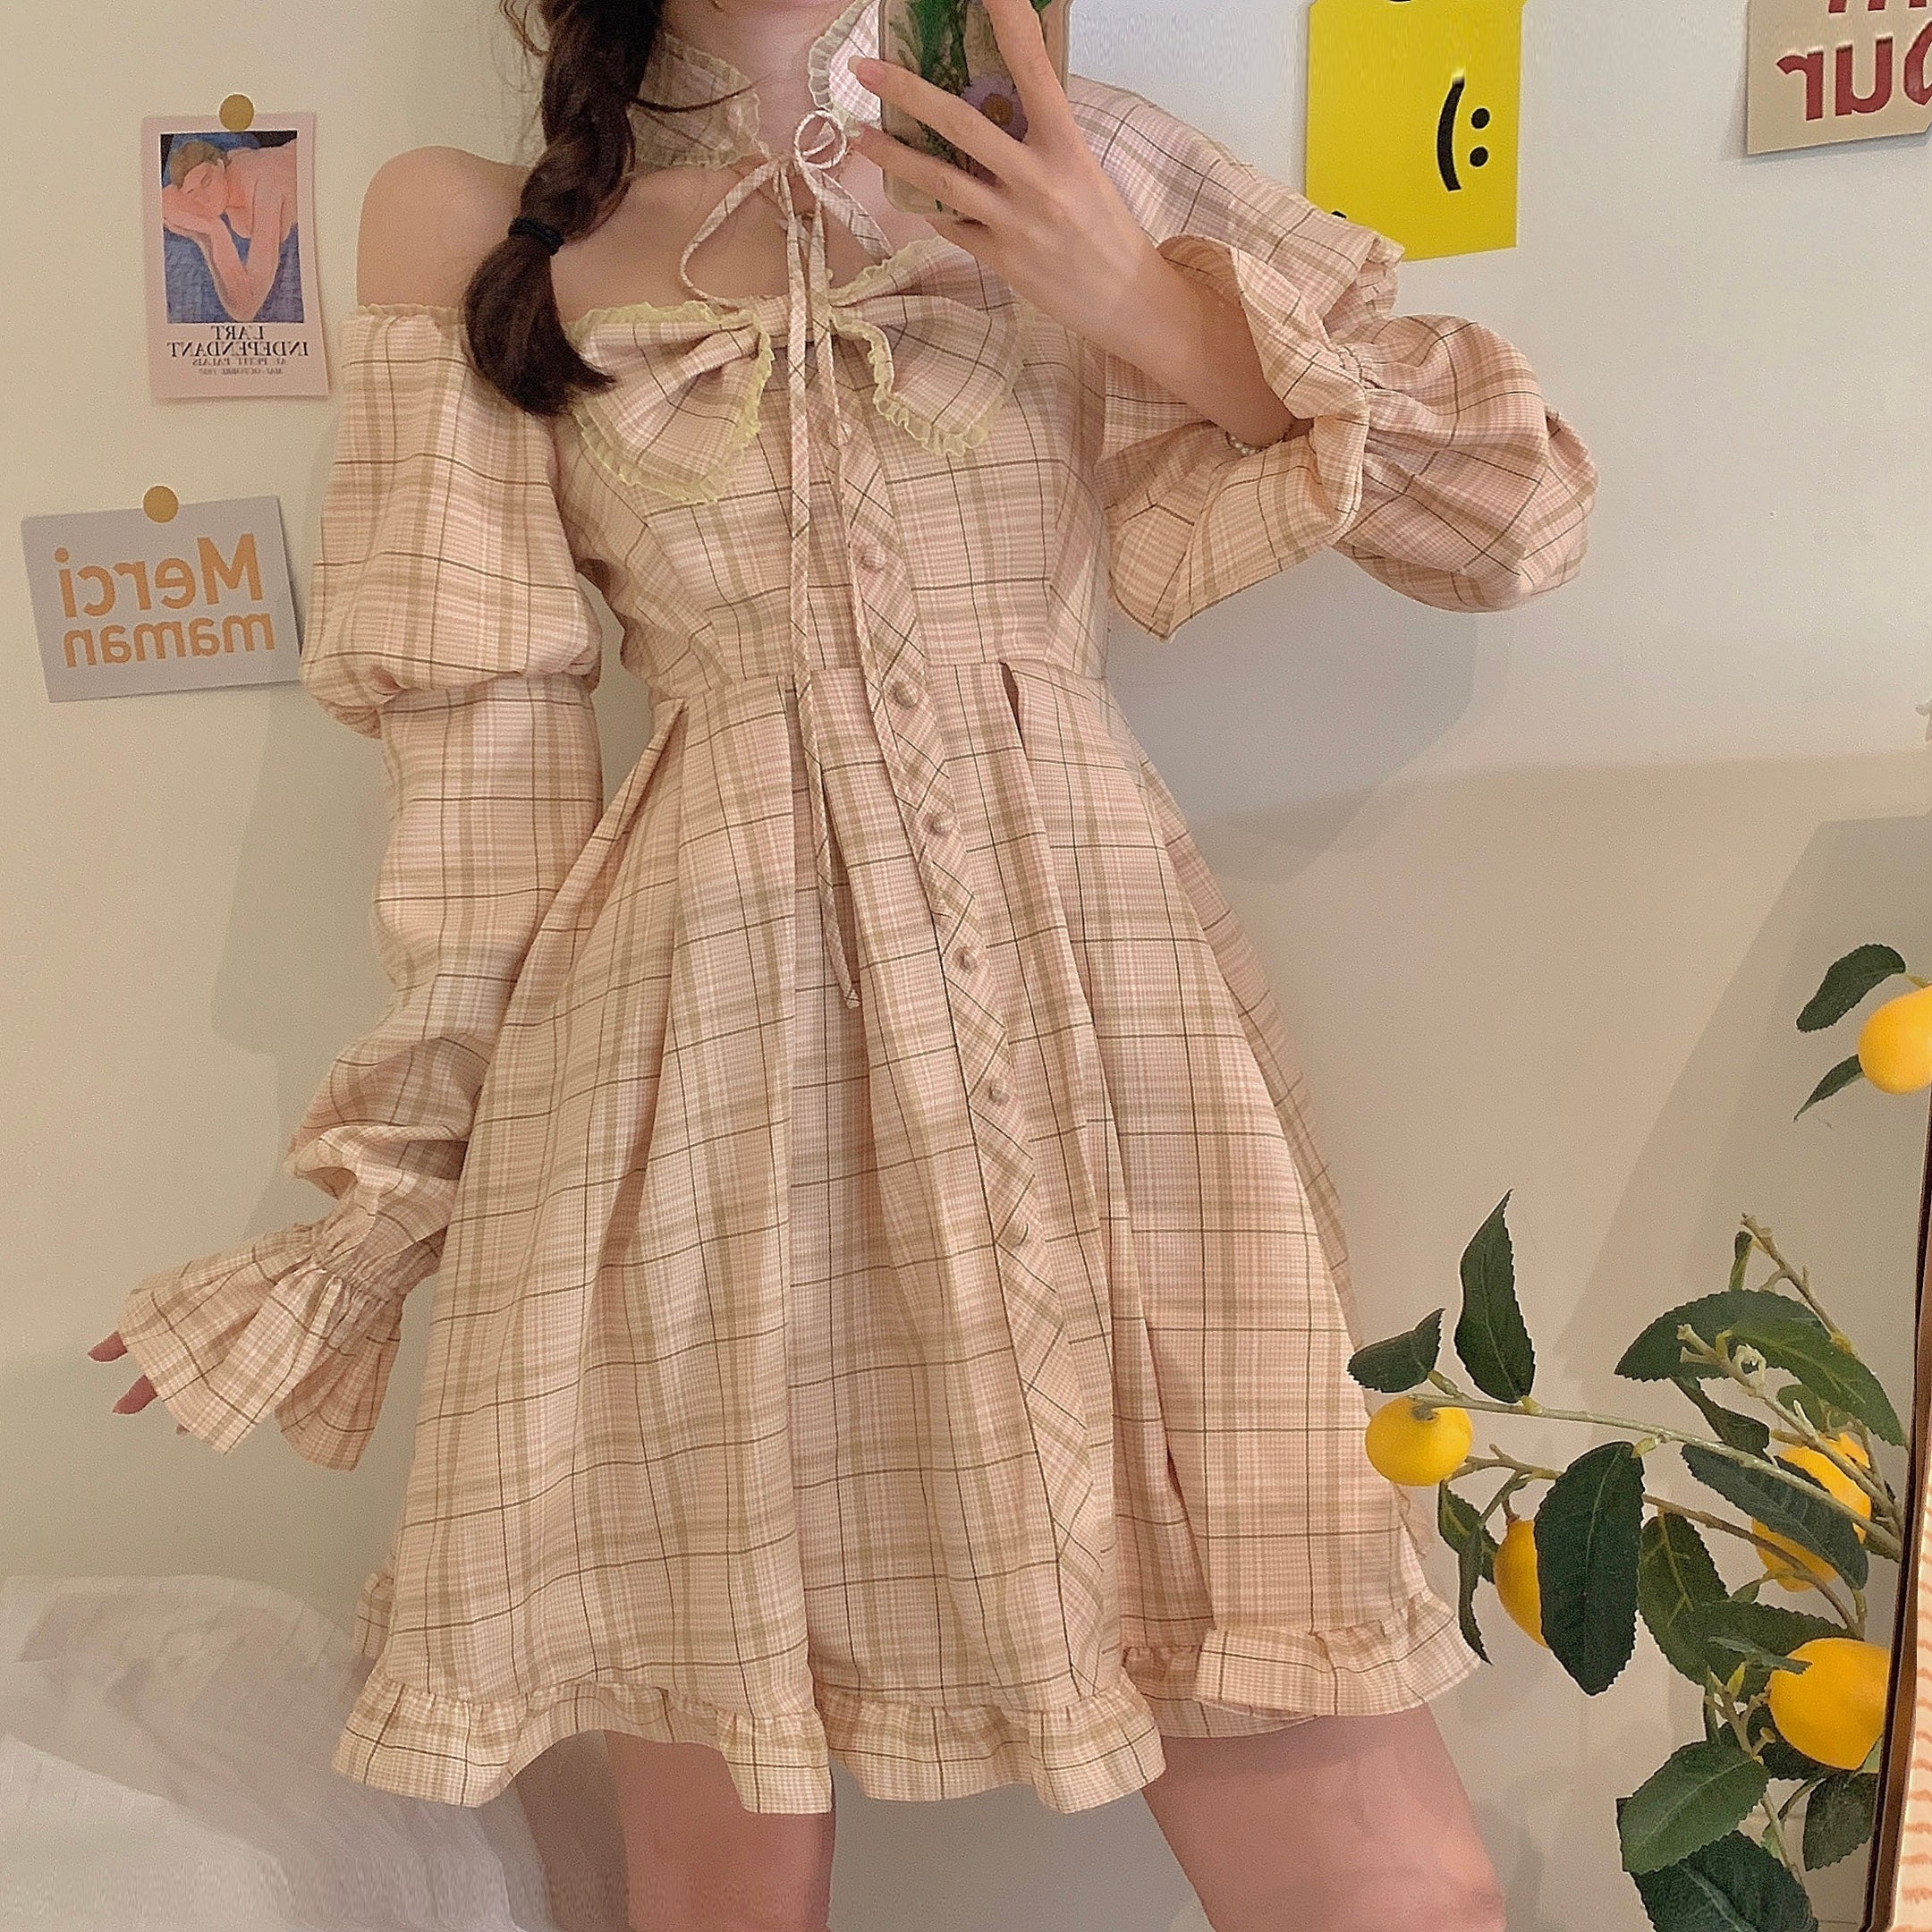 Retro Bowknot Lolita Dress pic